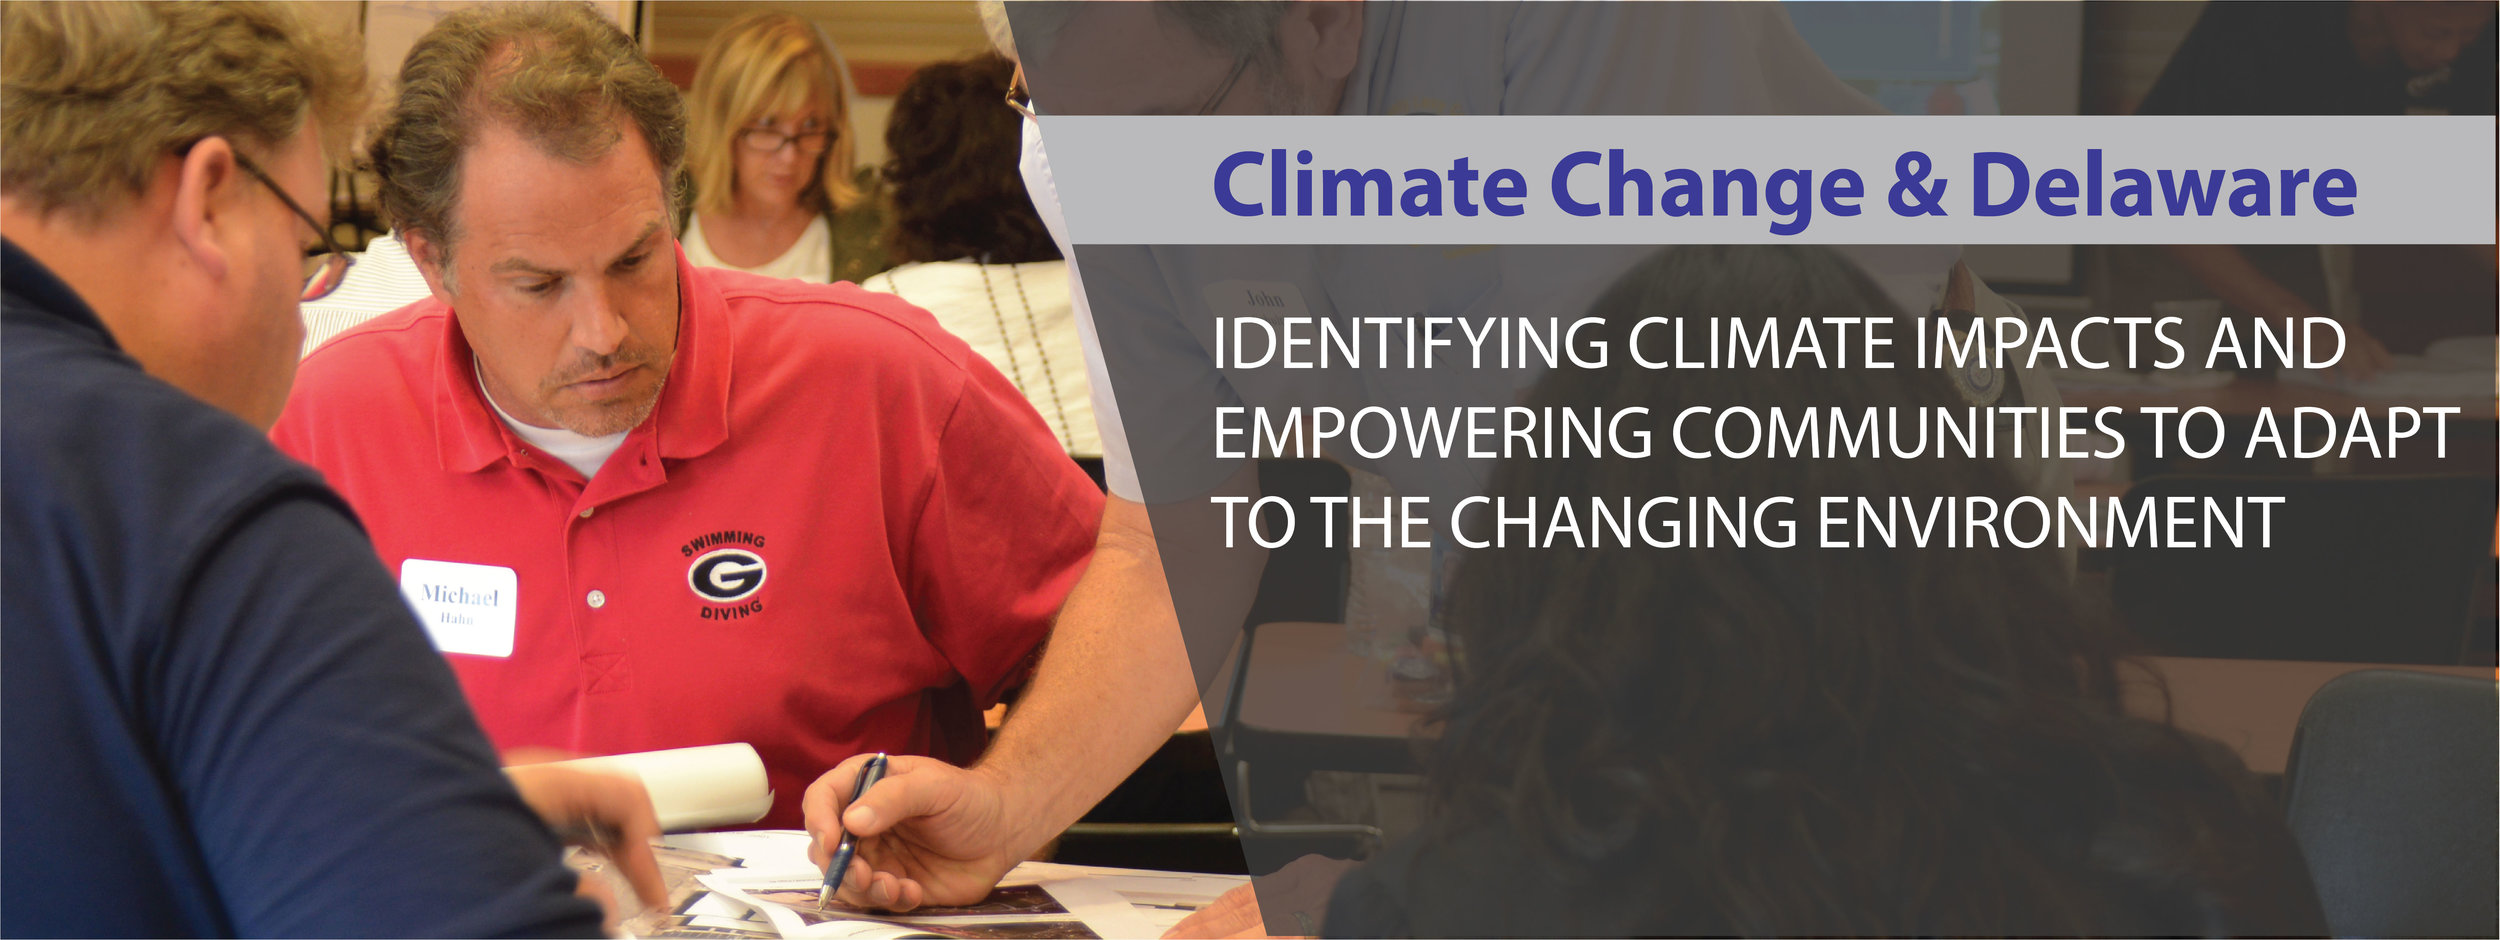 Climate Change & Delaware: Identifying climate impacts and empowering communities to adapt to the changing environment.